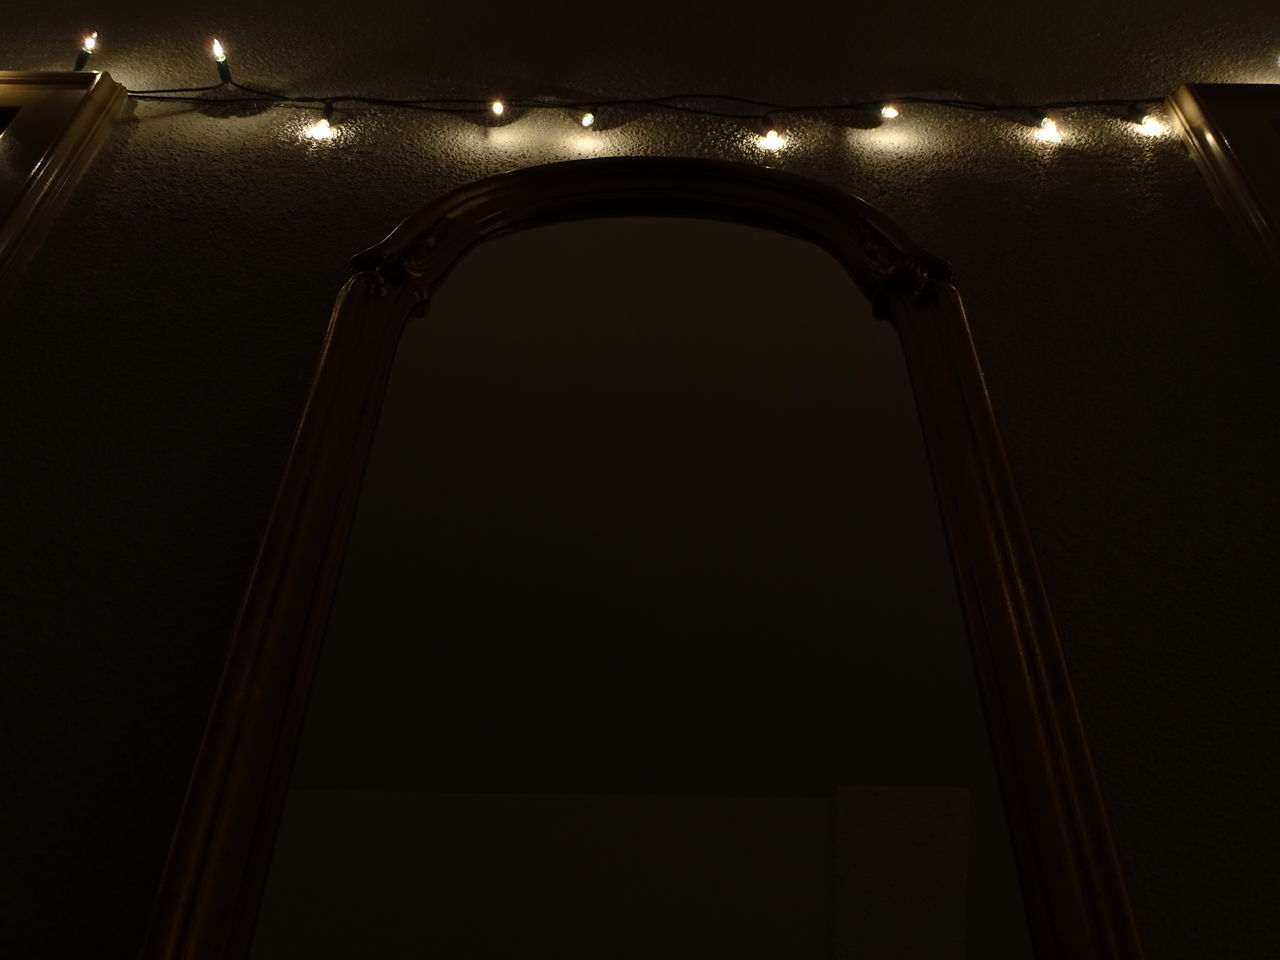 illuminated, low angle view, indoors, no people, architecture, night